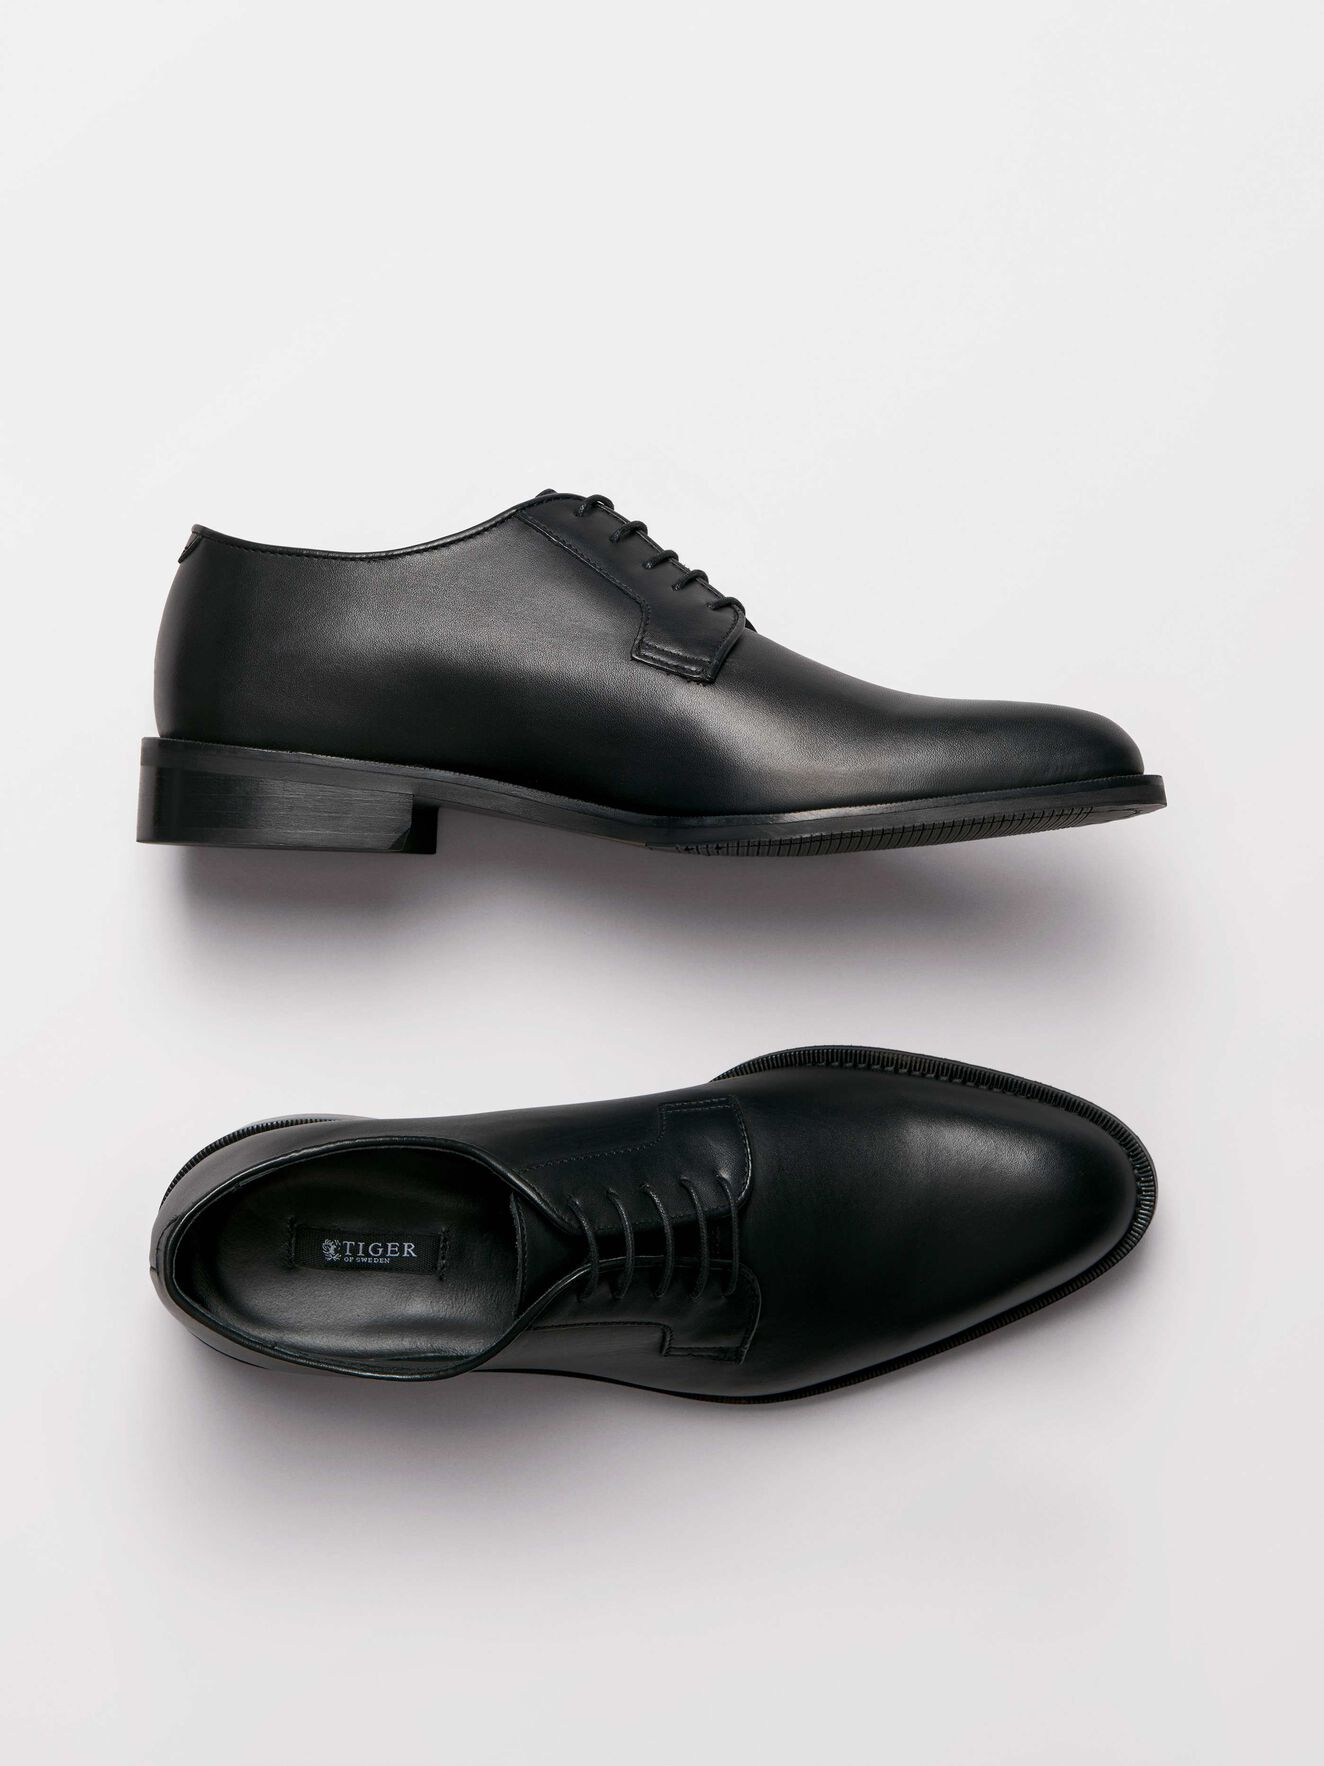 Agaton Shoe in Black from Tiger of Sweden